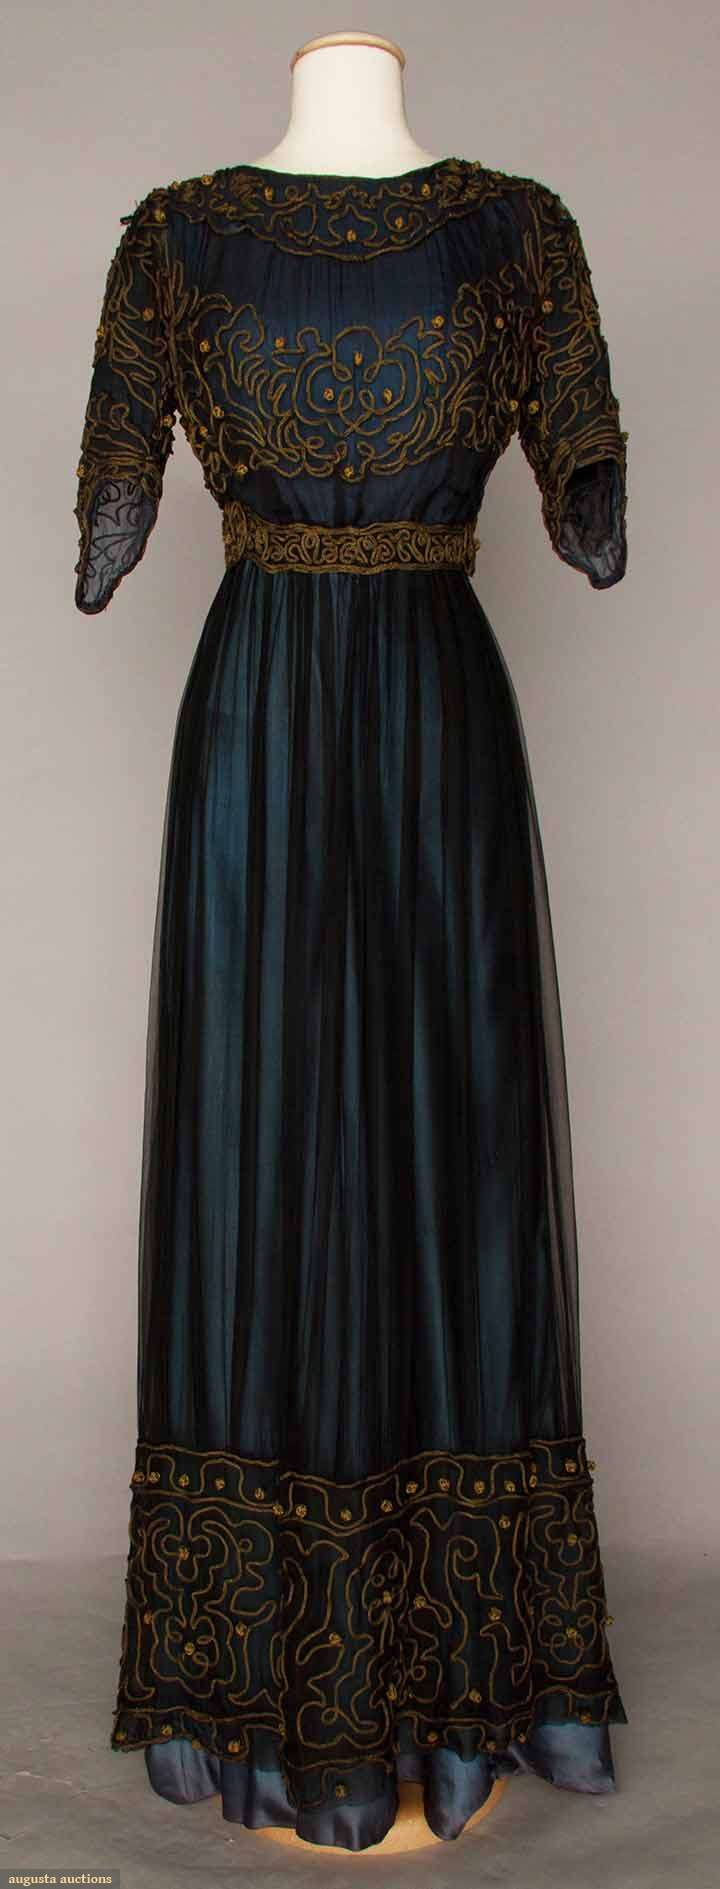 Afternoon dress ca. 1905, Marine blue silk & chiffon dress with gold soutache. (looks more 1906-1910 to me)